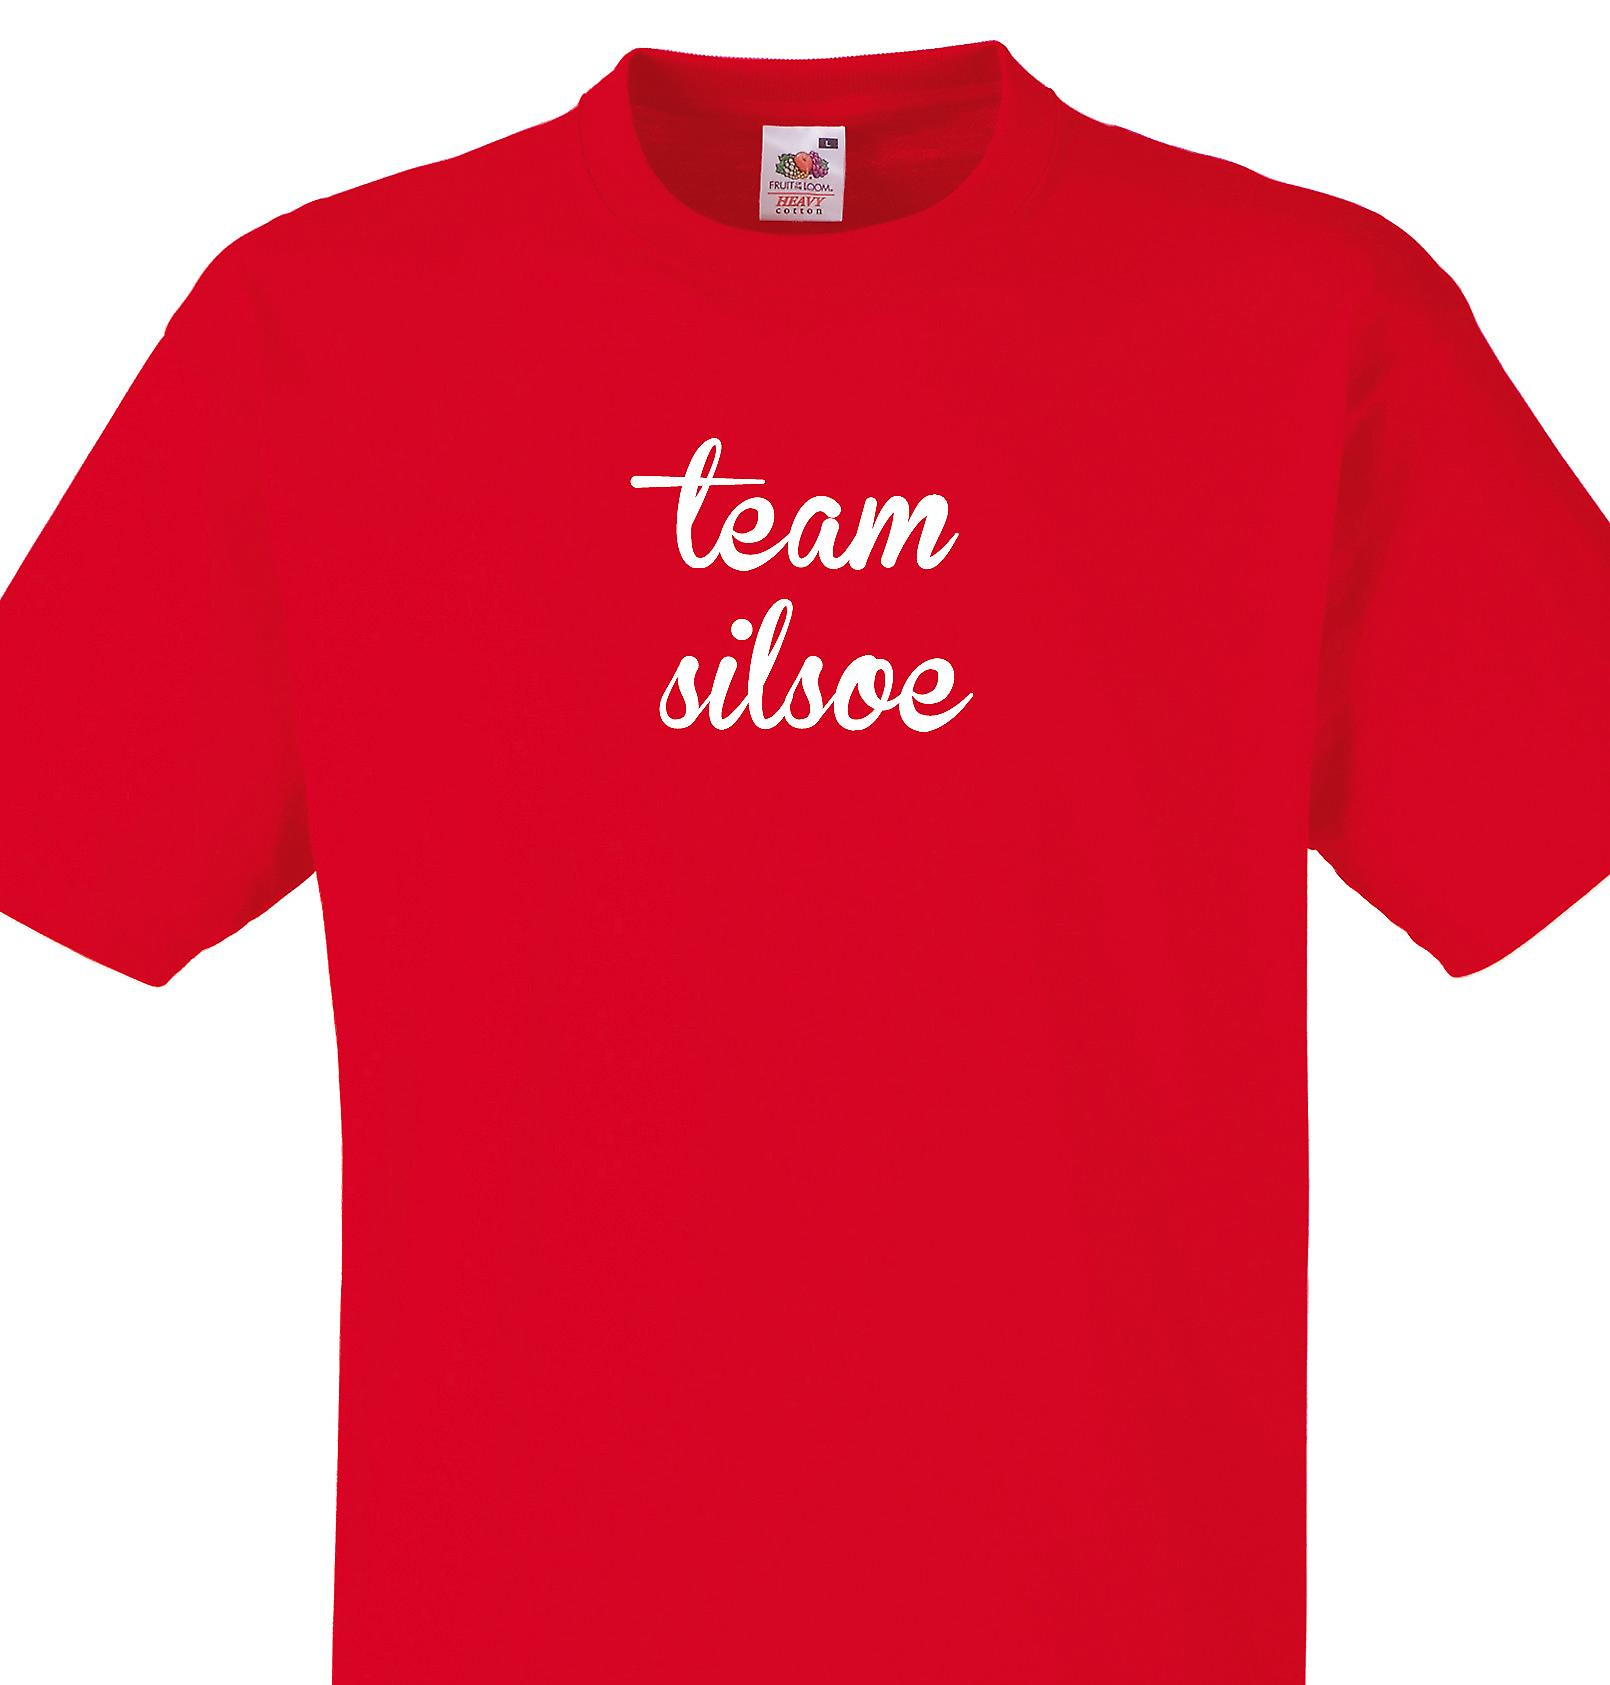 Team Silsoe Red T shirt